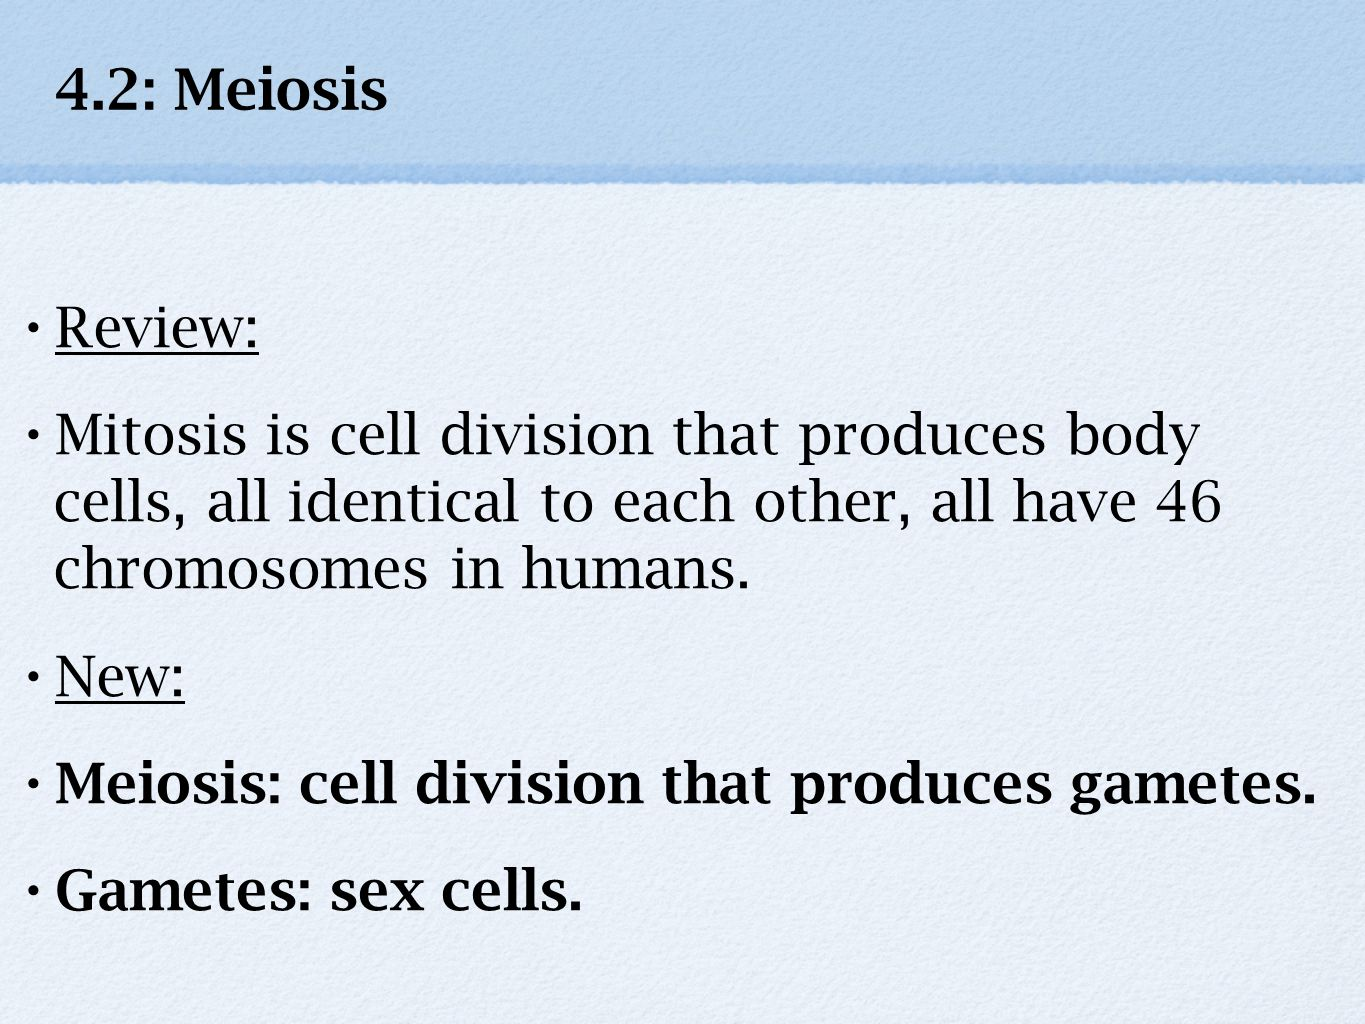 4.2: Meiosis Review: Mitosis is cell division that produces body cells, all identical to each other, all have 46 chromosomes in humans. New: Meiosis: